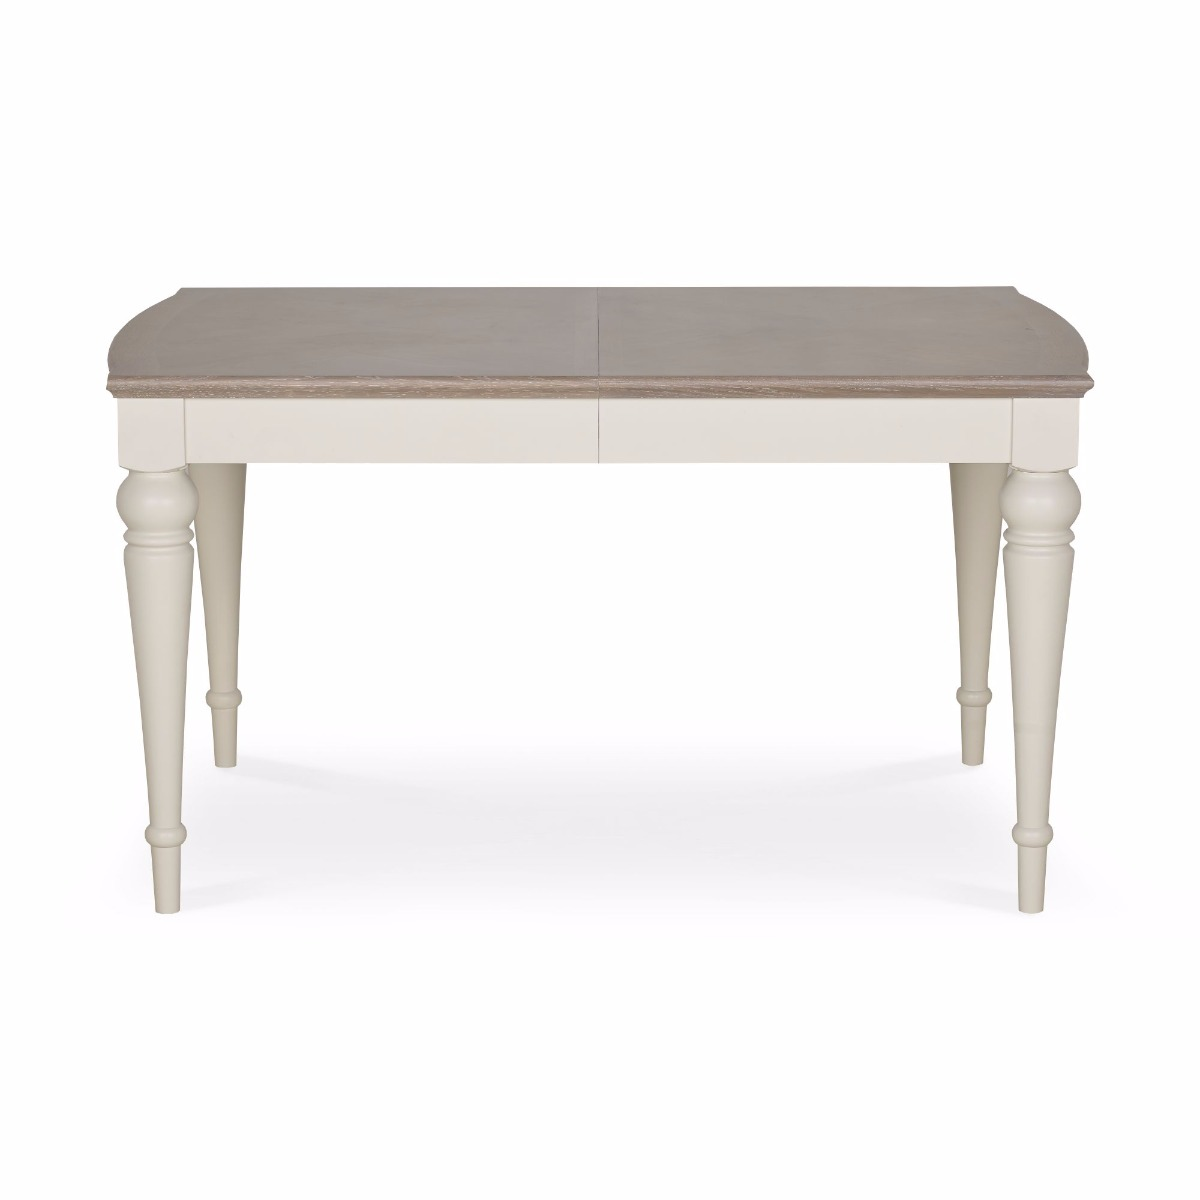 https://www.firstfurniture.co.uk/pub/media/catalog/product/b/e/bentley_designs_montreux_grey_washed_oak_and_soft_grey_4-6_ext._table_1.jpg